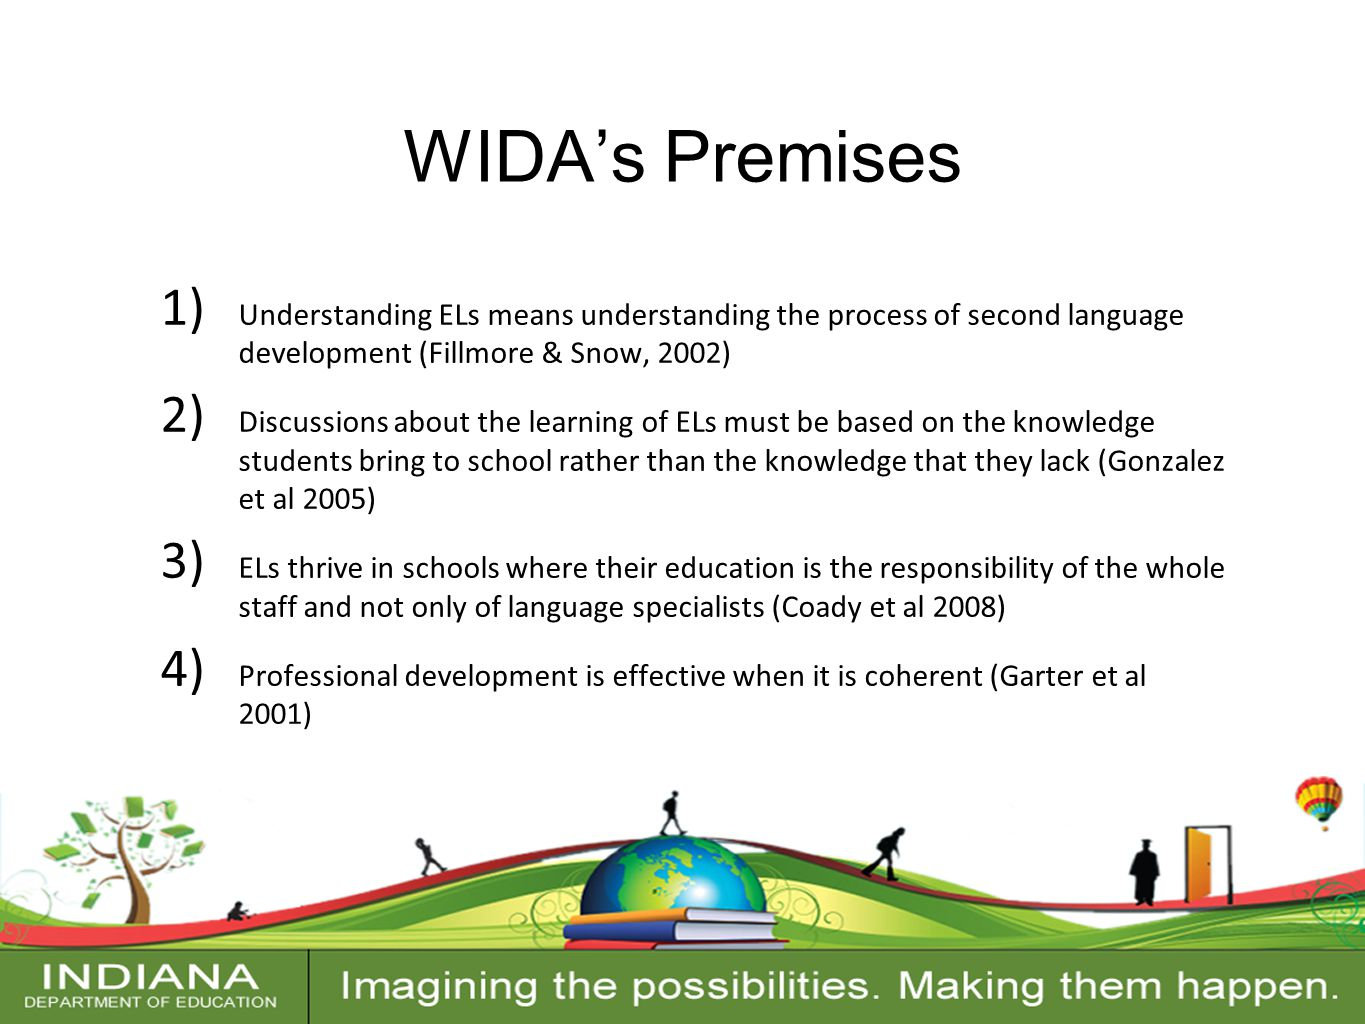 Contact Information WIDA's Premises 1) Understanding ELs means understanding the process of second language development (Fillmore & Snow, 2002) 2) Discussions about the learning of ELs must be based on the knowledge students bring to school rather than the knowledge that they lack (Gonzalez et al 2005) 3) ELs thrive in schools where their education is the responsibility of the whole staff and not only of language specialists (Coady et al 2008) 4) Professional development is effective when it is coherent (Garter et al 2001)